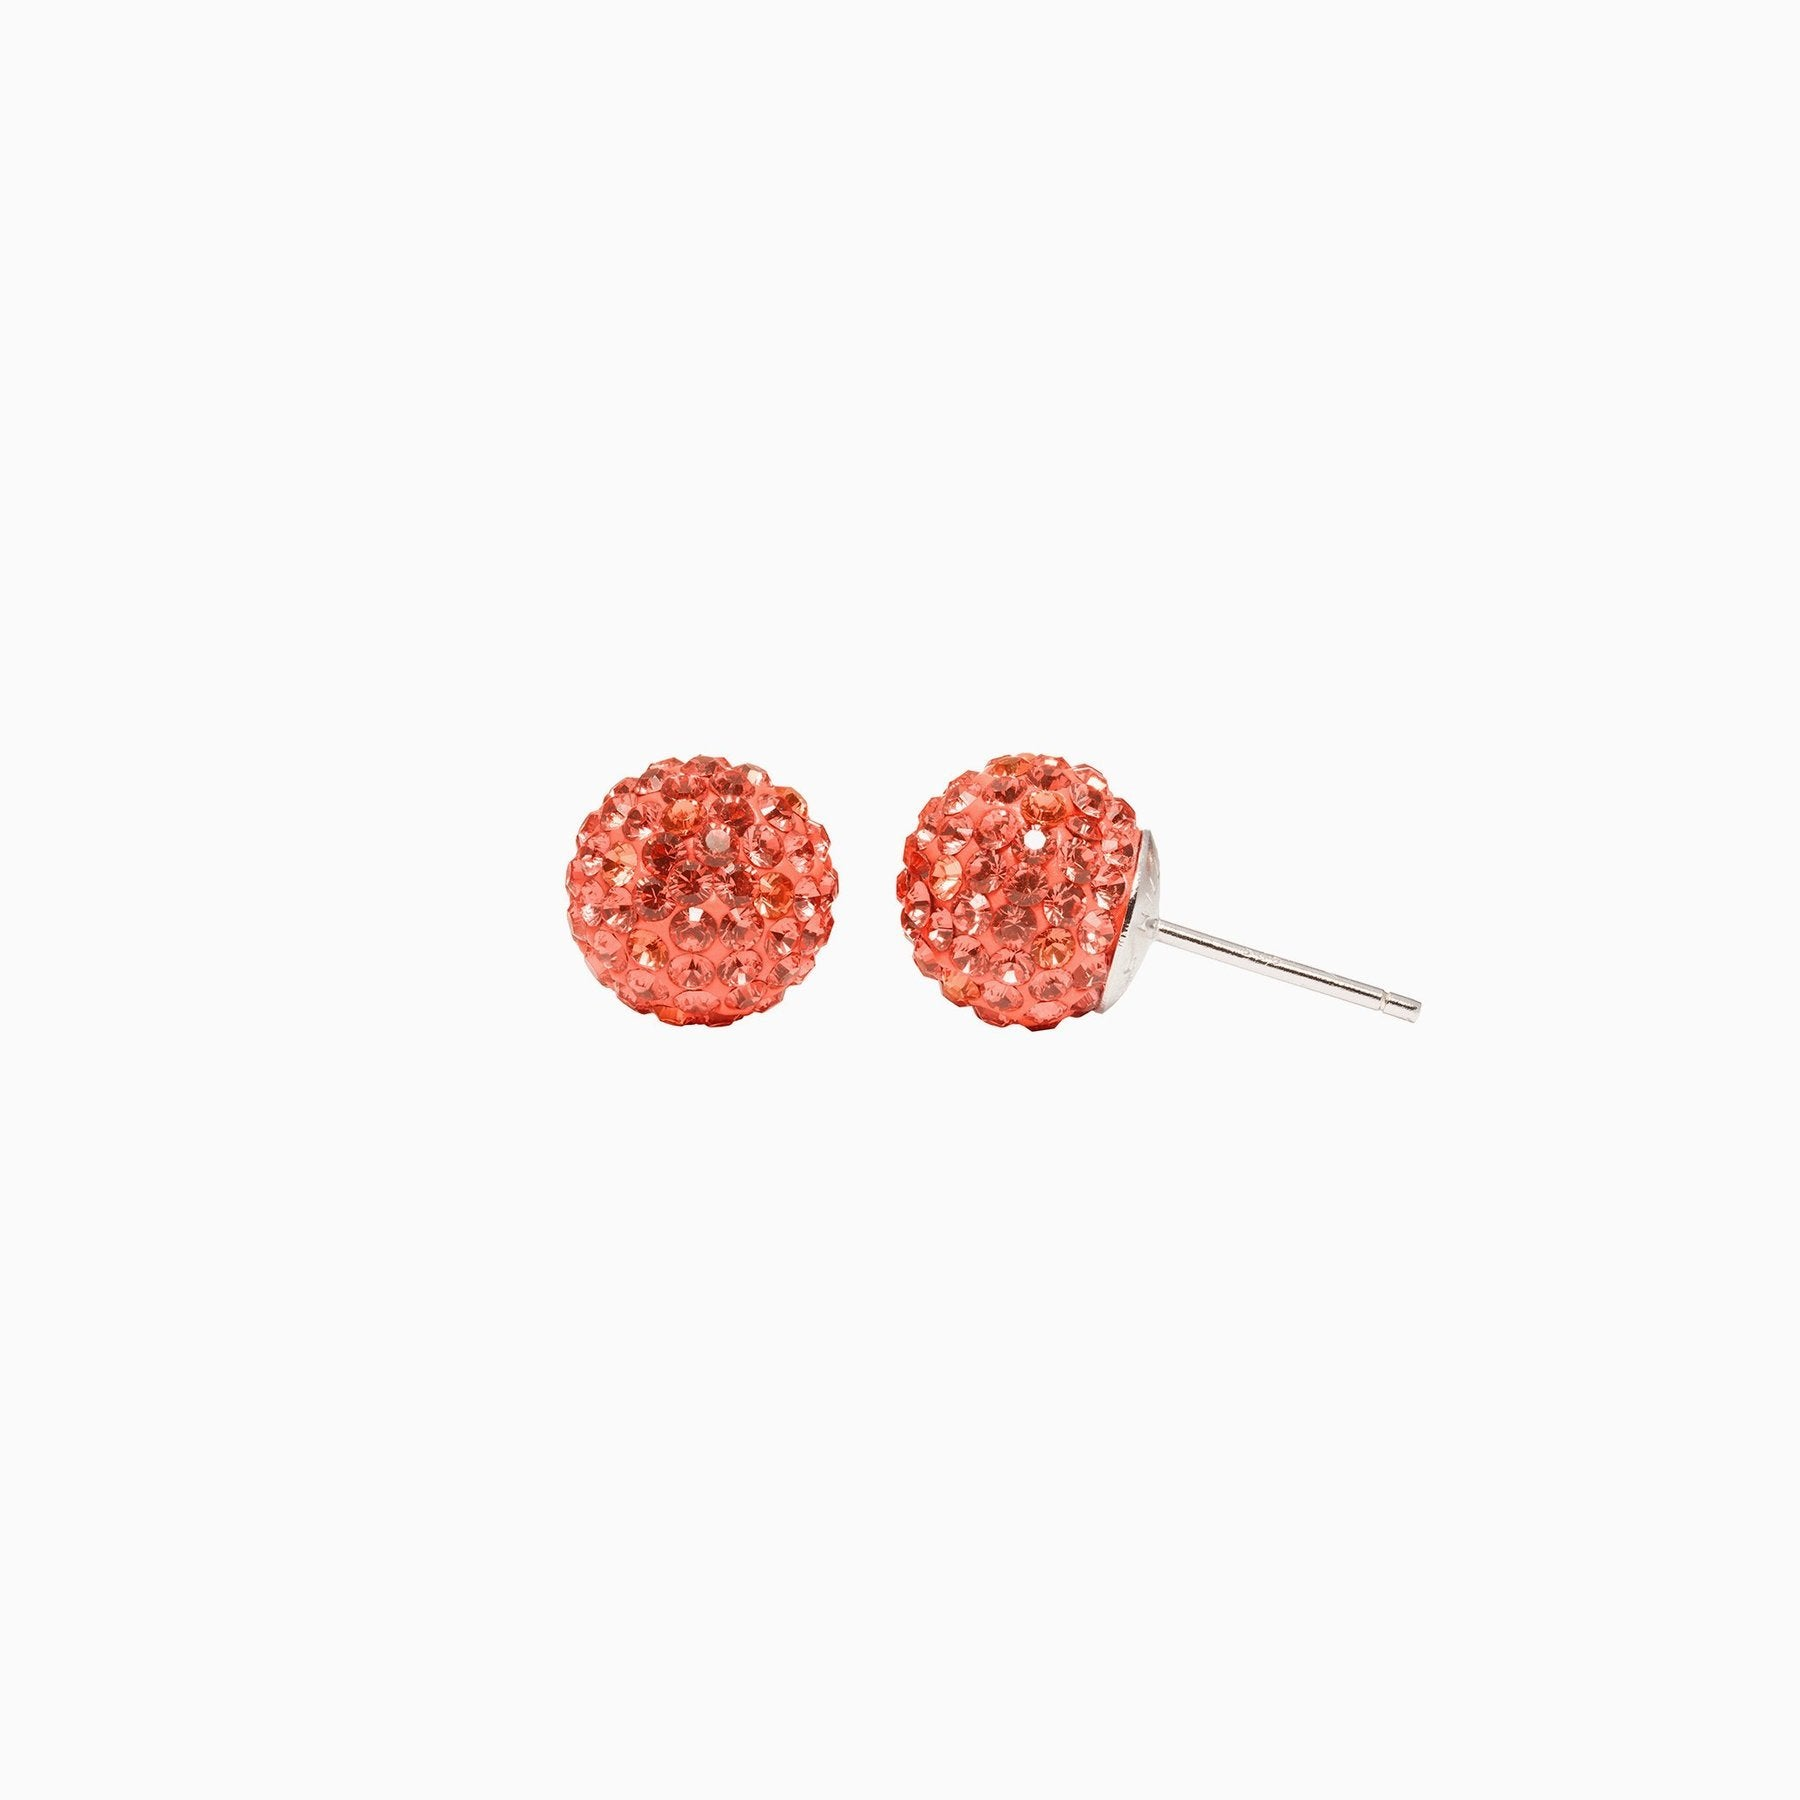 H&B Sparkle Ball™ Stud Earrings - 10mm Coral